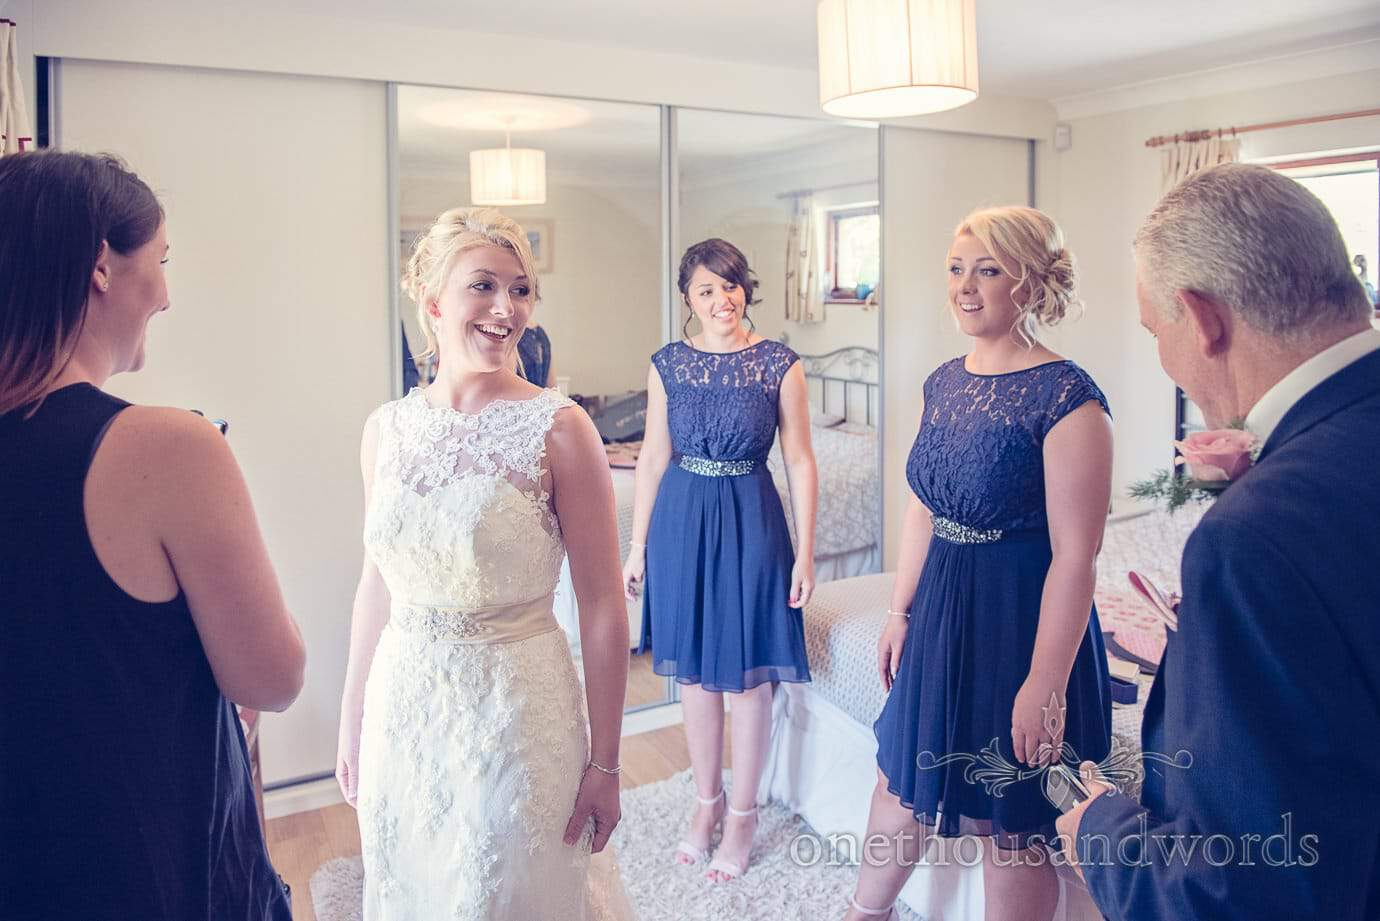 Documentary photograph of Bridesmaids looking at bride in white wedding dress